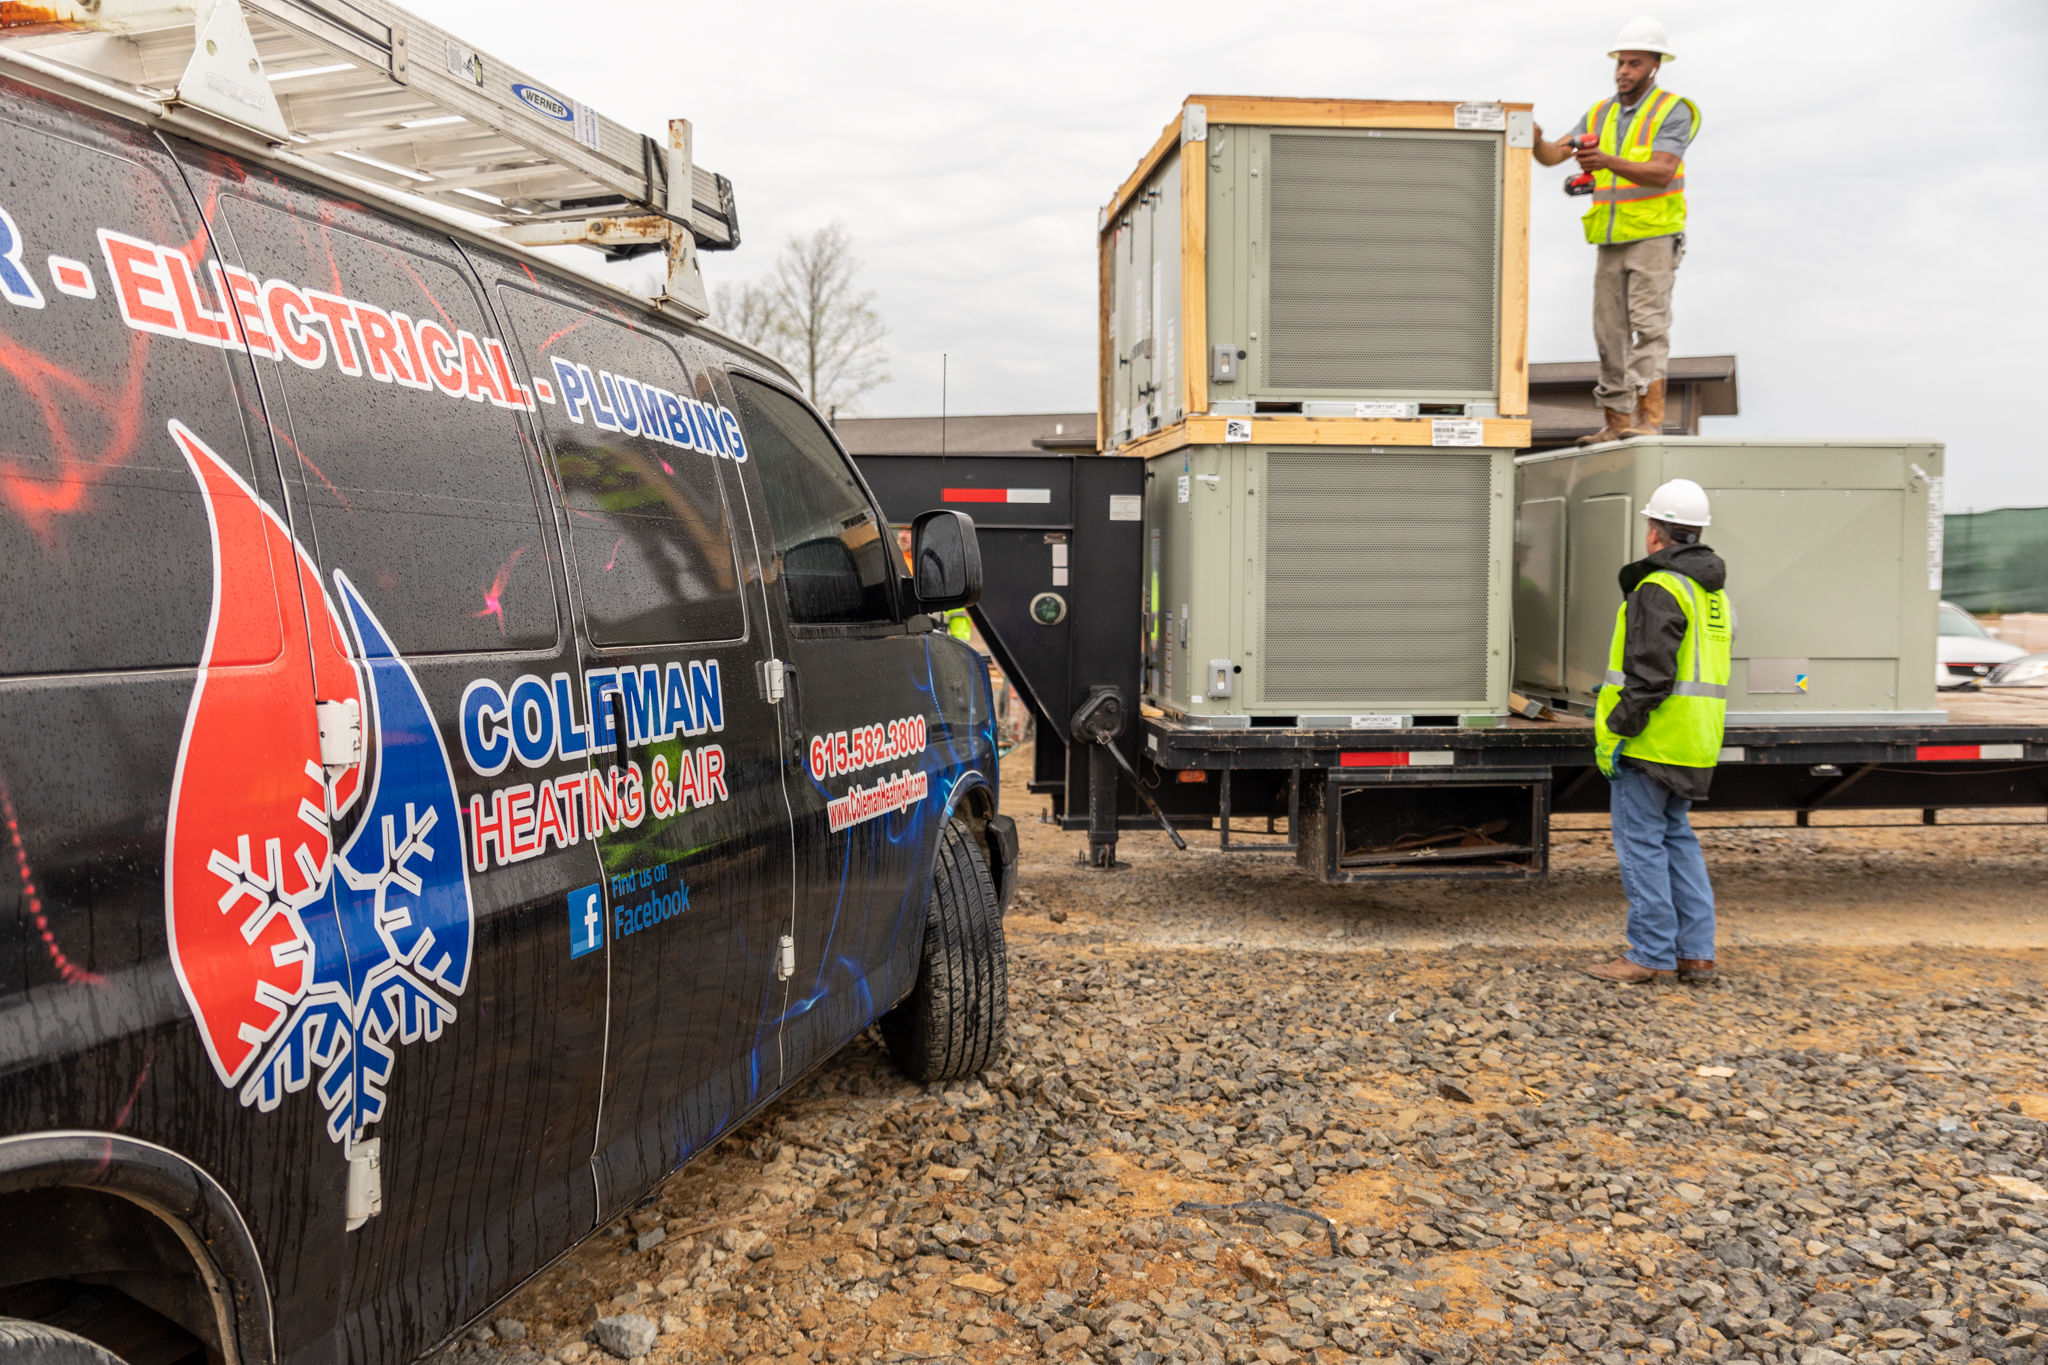 Coleman Heating and Air_TLE Mt Juliet-41.jpg